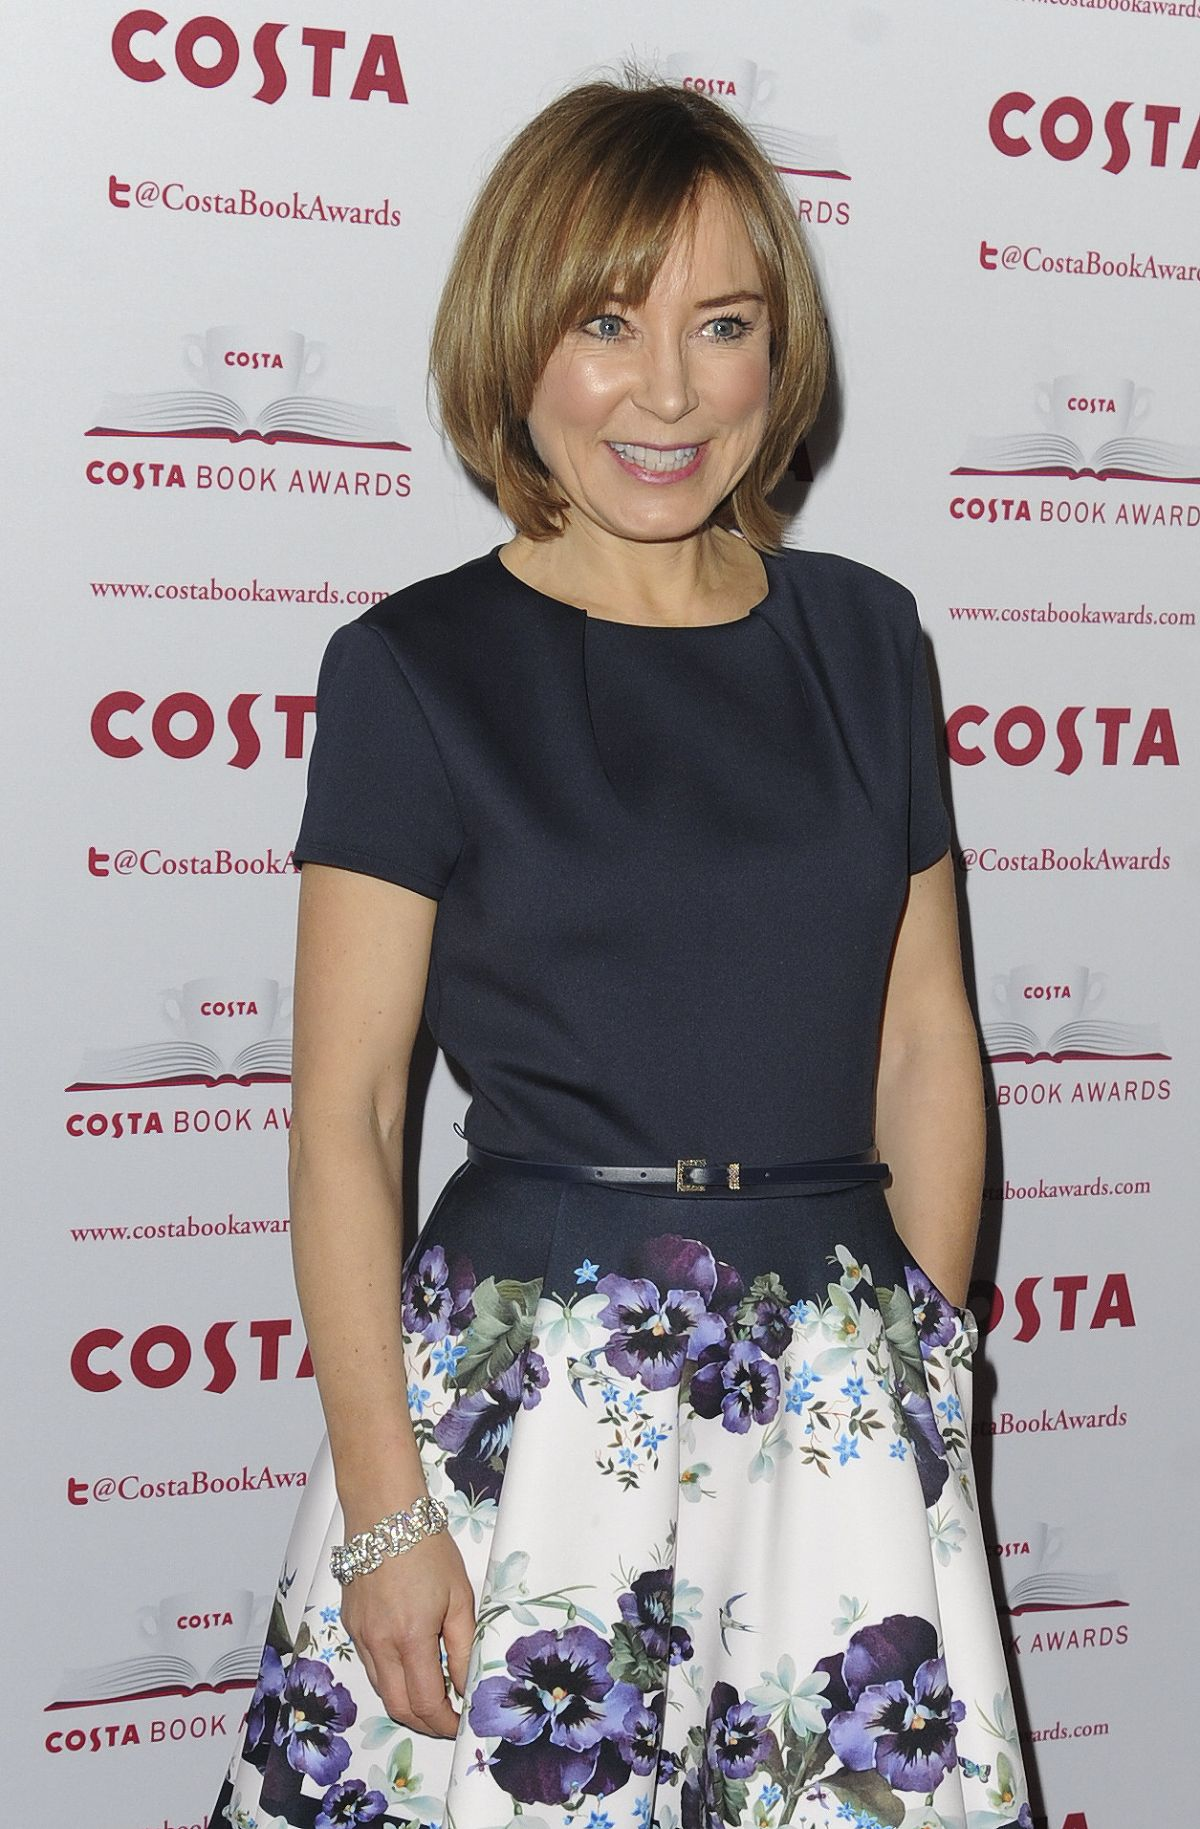 SIAN WILLIAMS at Costa Book Awards in London 01/31/2017